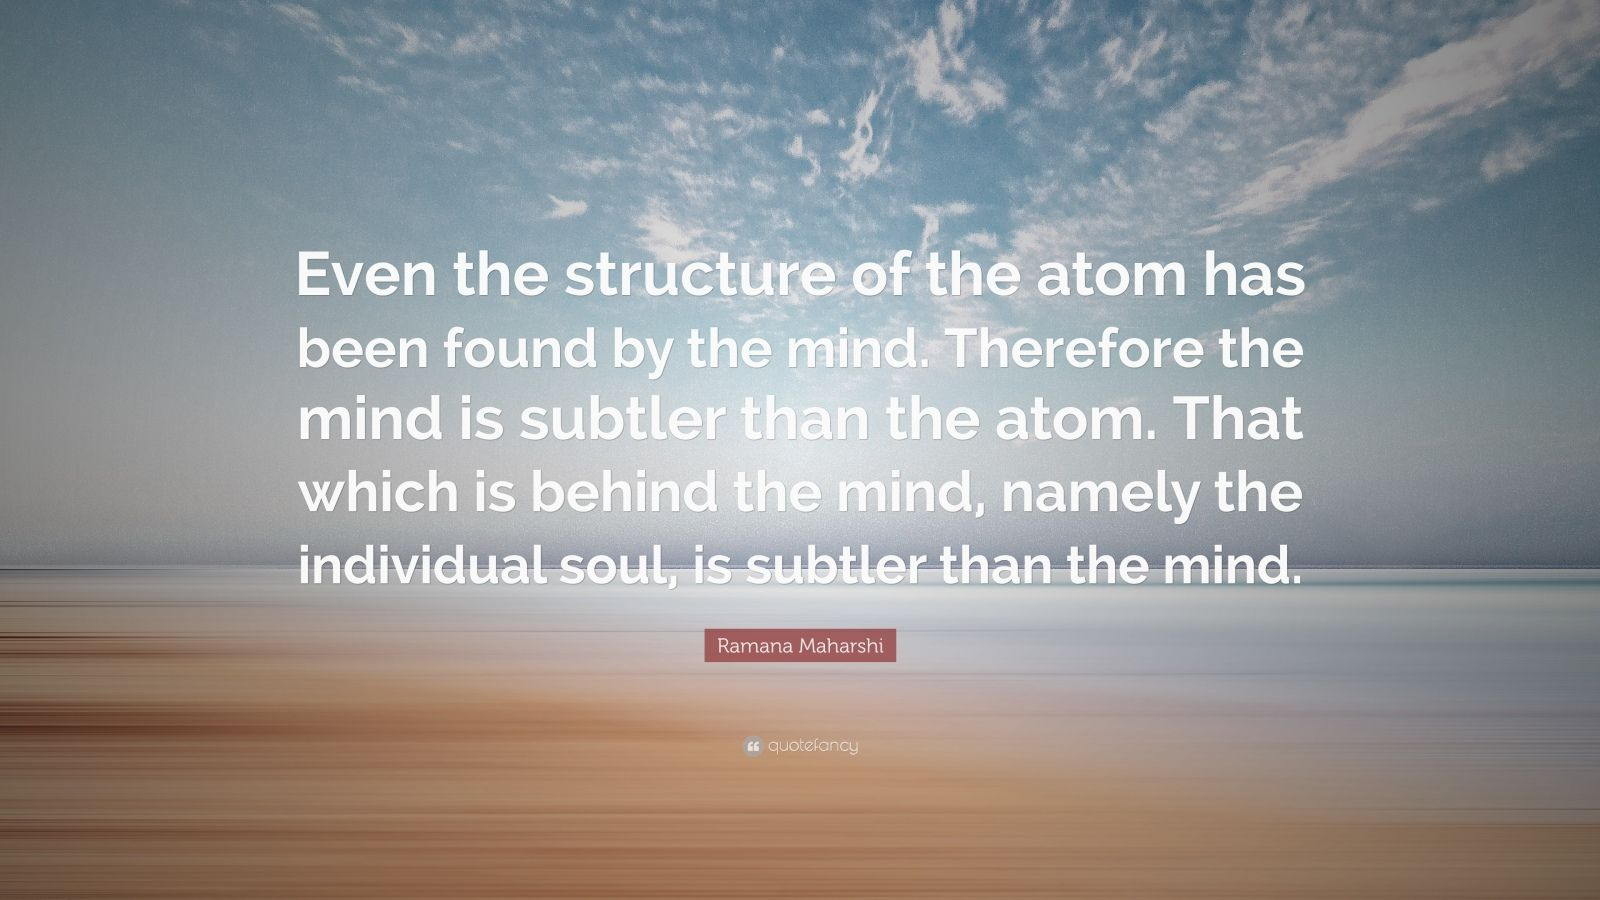 """Ramana Maharshi Quote: """"Even the structure of the atom has been found by the mind. Therefore the mind is subtler than the atom. That which is behind the mind, namely the individual soul, is subtler than the mind."""""""